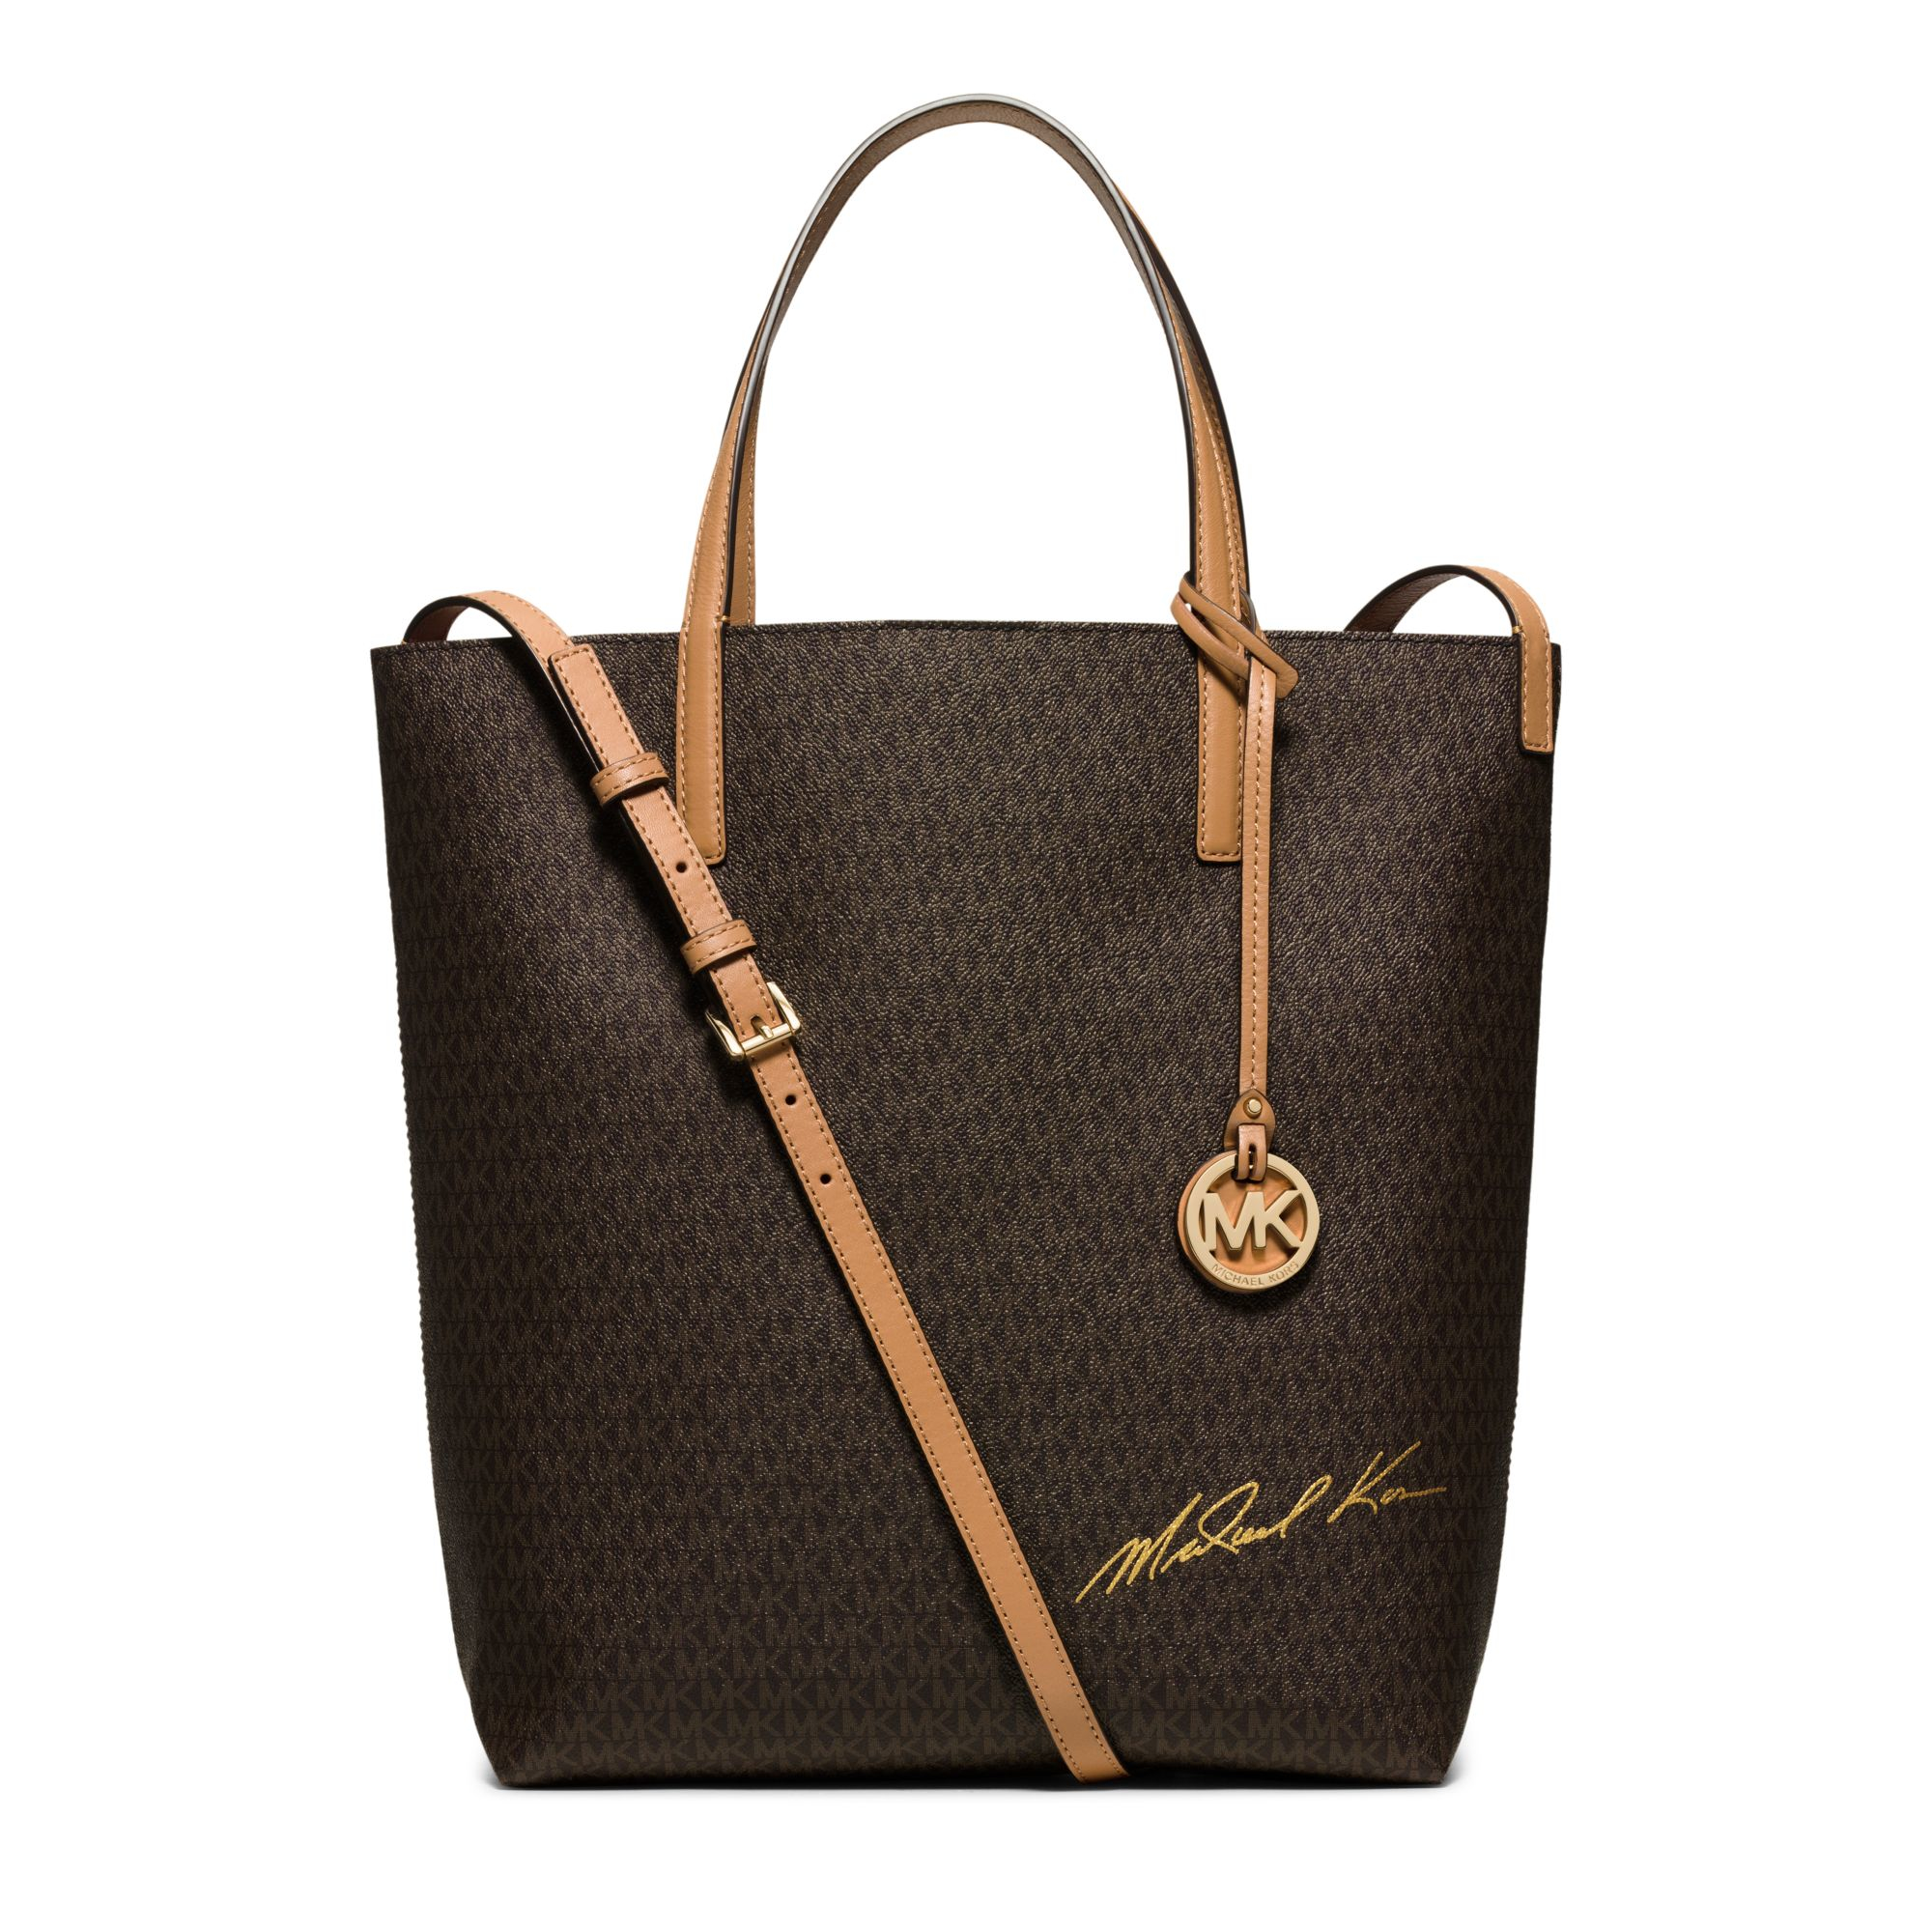 michael kors signature logo large convertible tote in. Black Bedroom Furniture Sets. Home Design Ideas